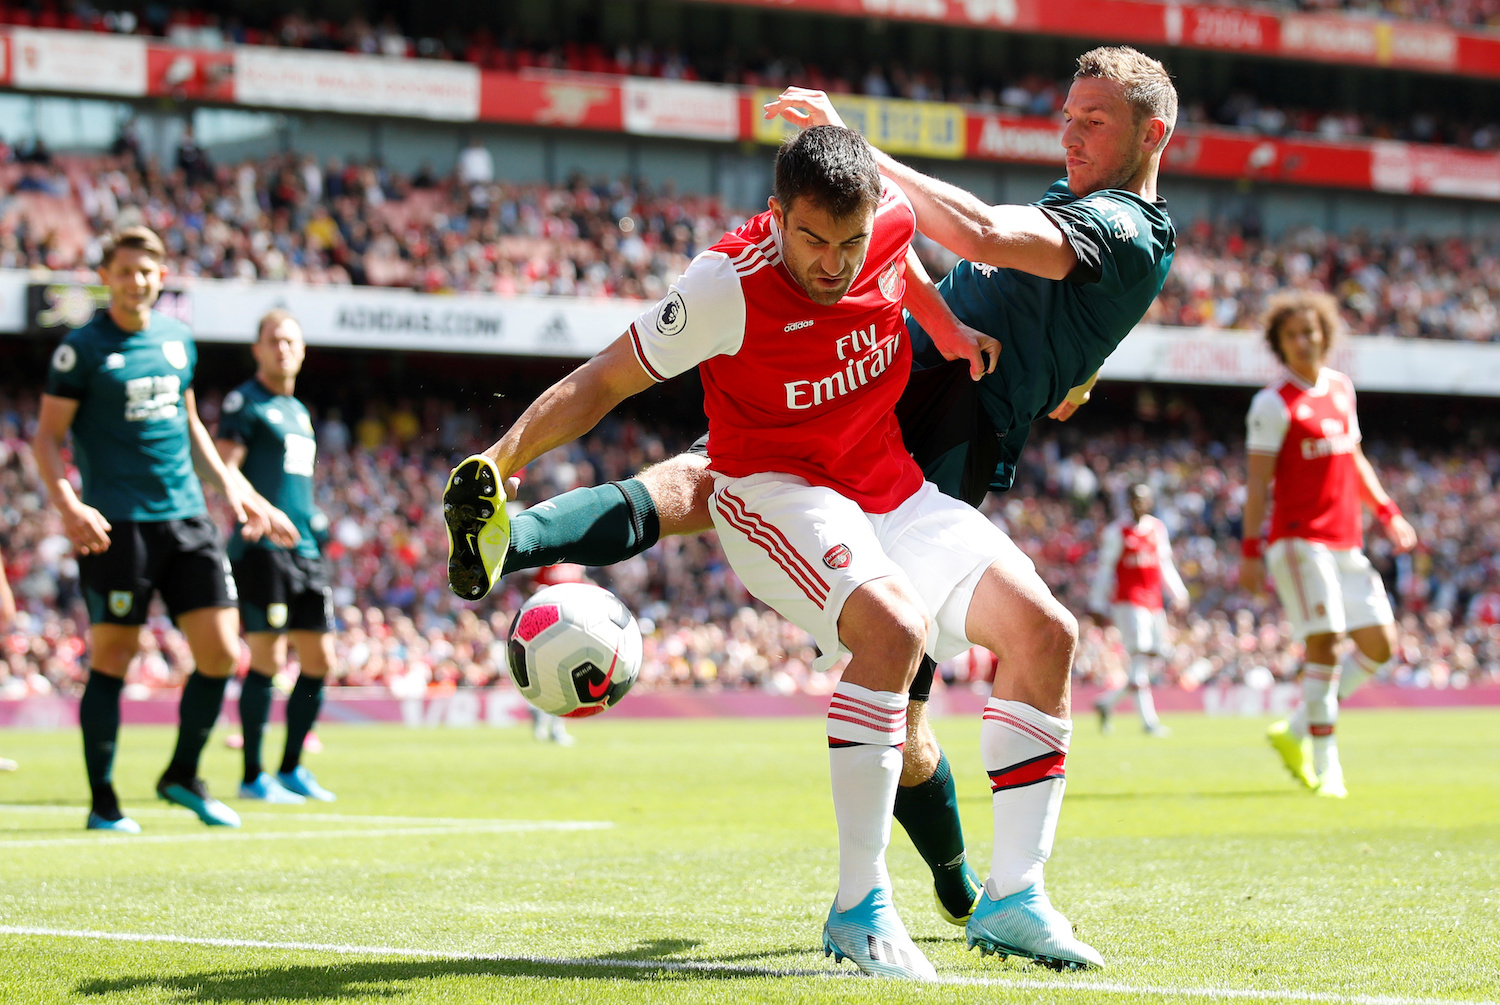 Burnley's Chris Wood pursues Arsenal's Sokratis Papastathopoulos during the clubs' Premier League match at Emirates Stadium on Saturday. (Reuters Photo)